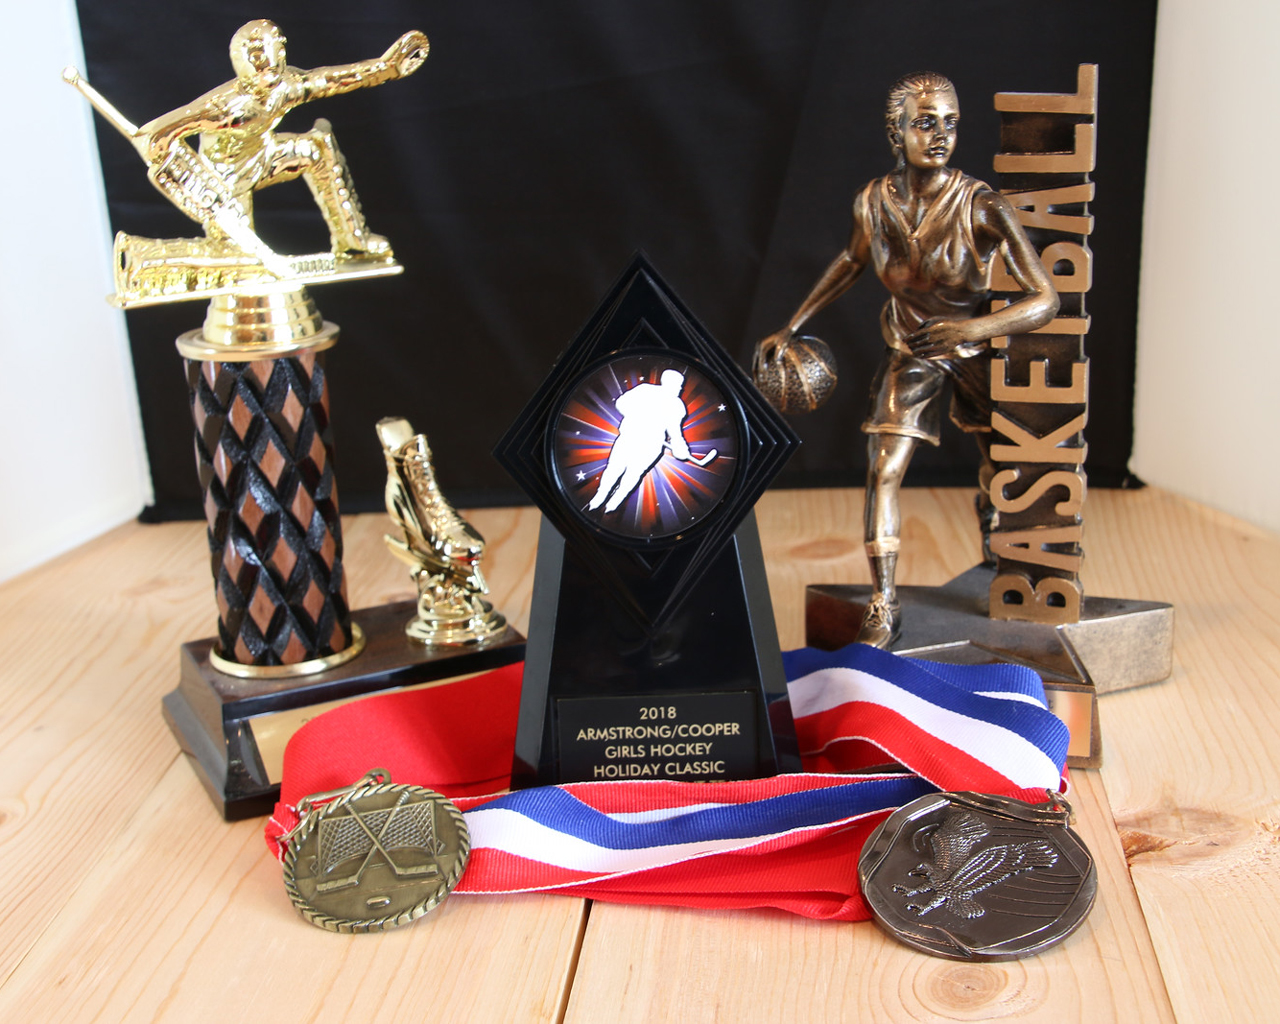 Trophies, Awards & Plaques - Greeley Signs & Graphics LLC